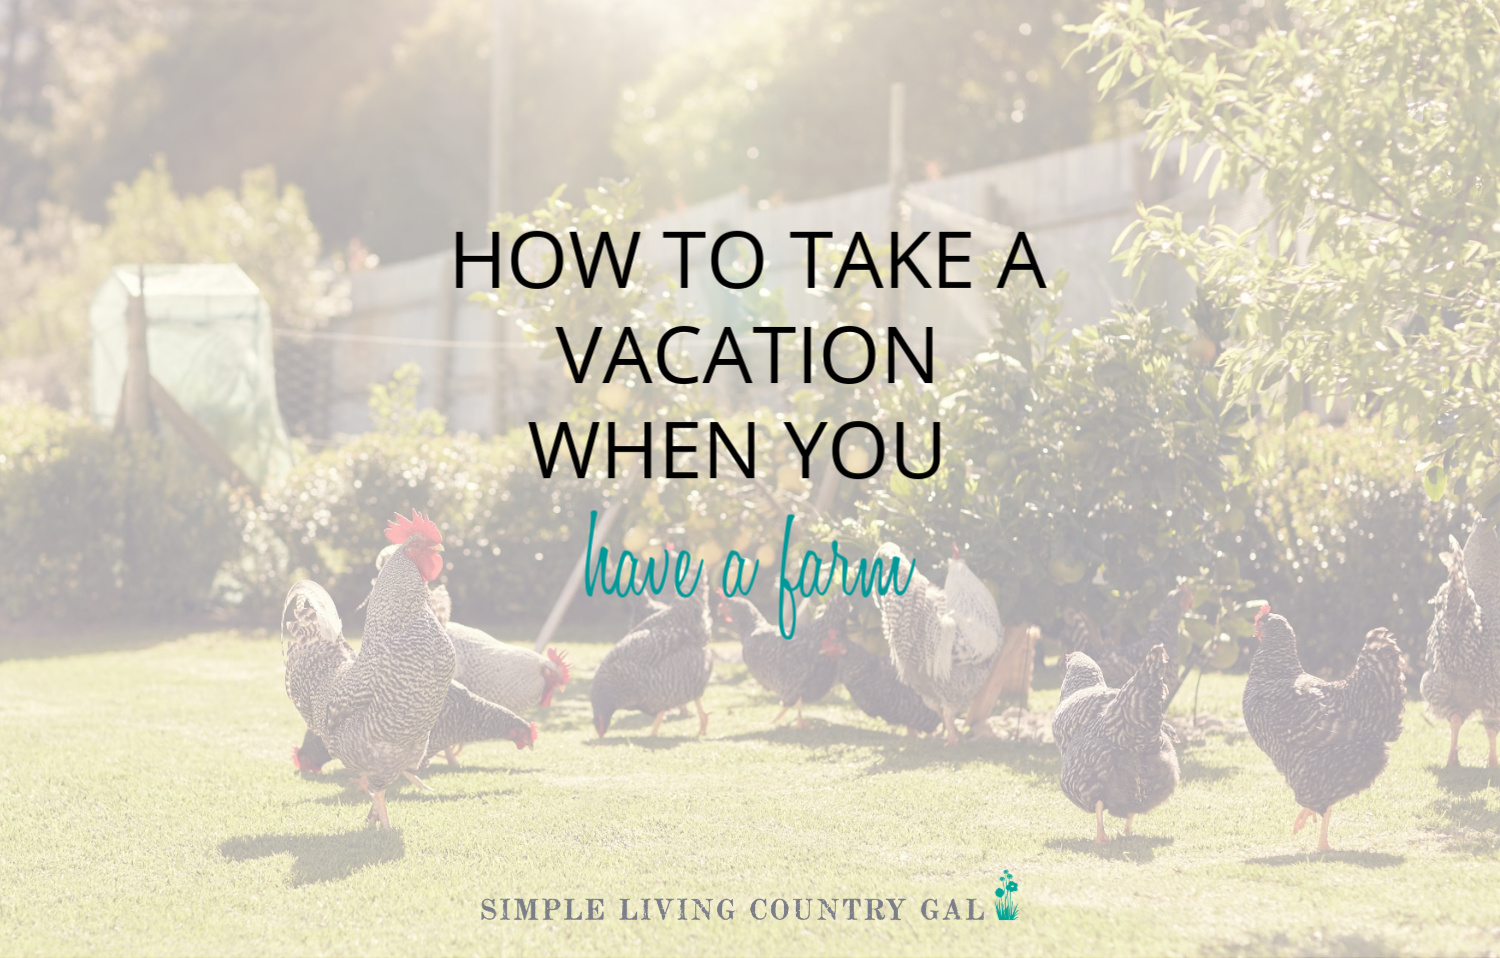 How to Take a Vacation When you Farm